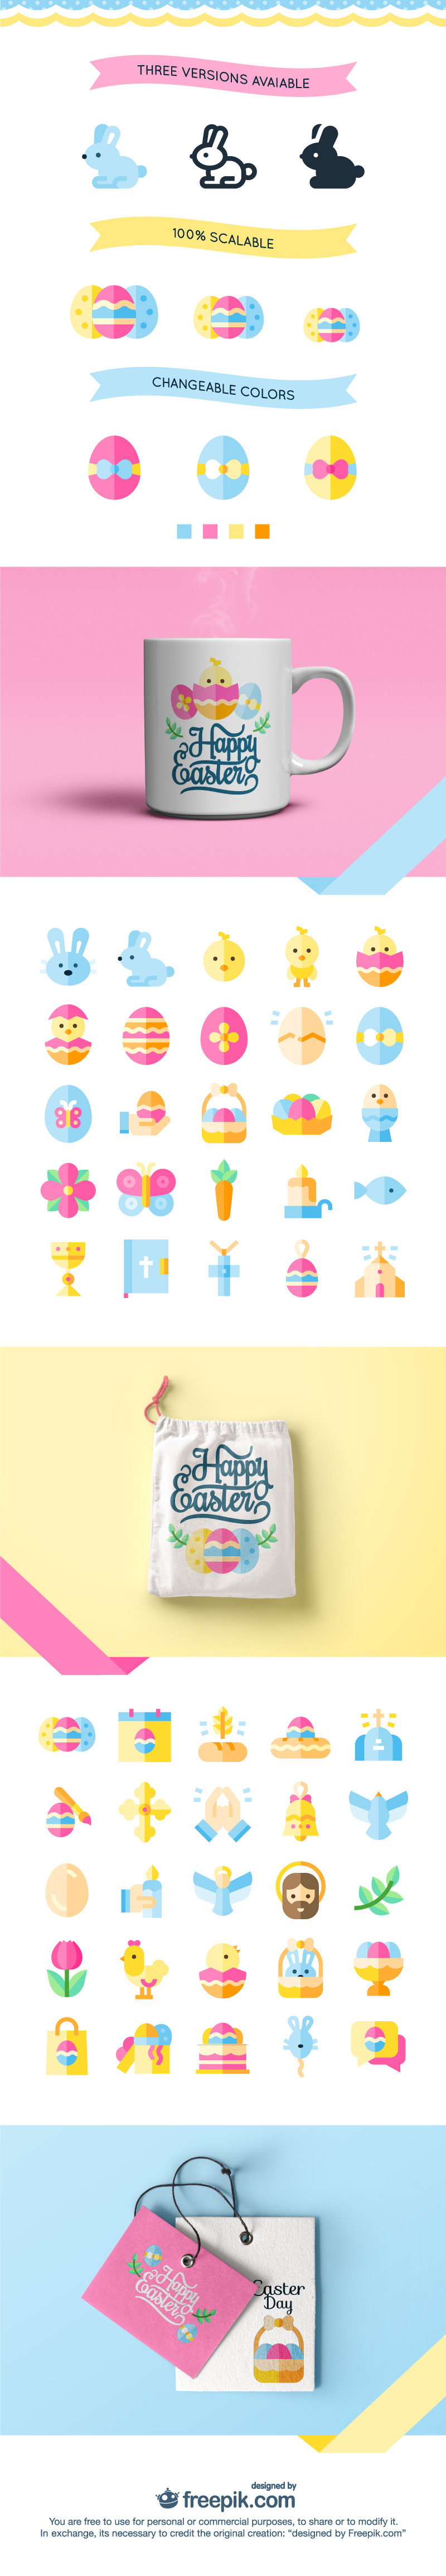 Free Easter icons pack